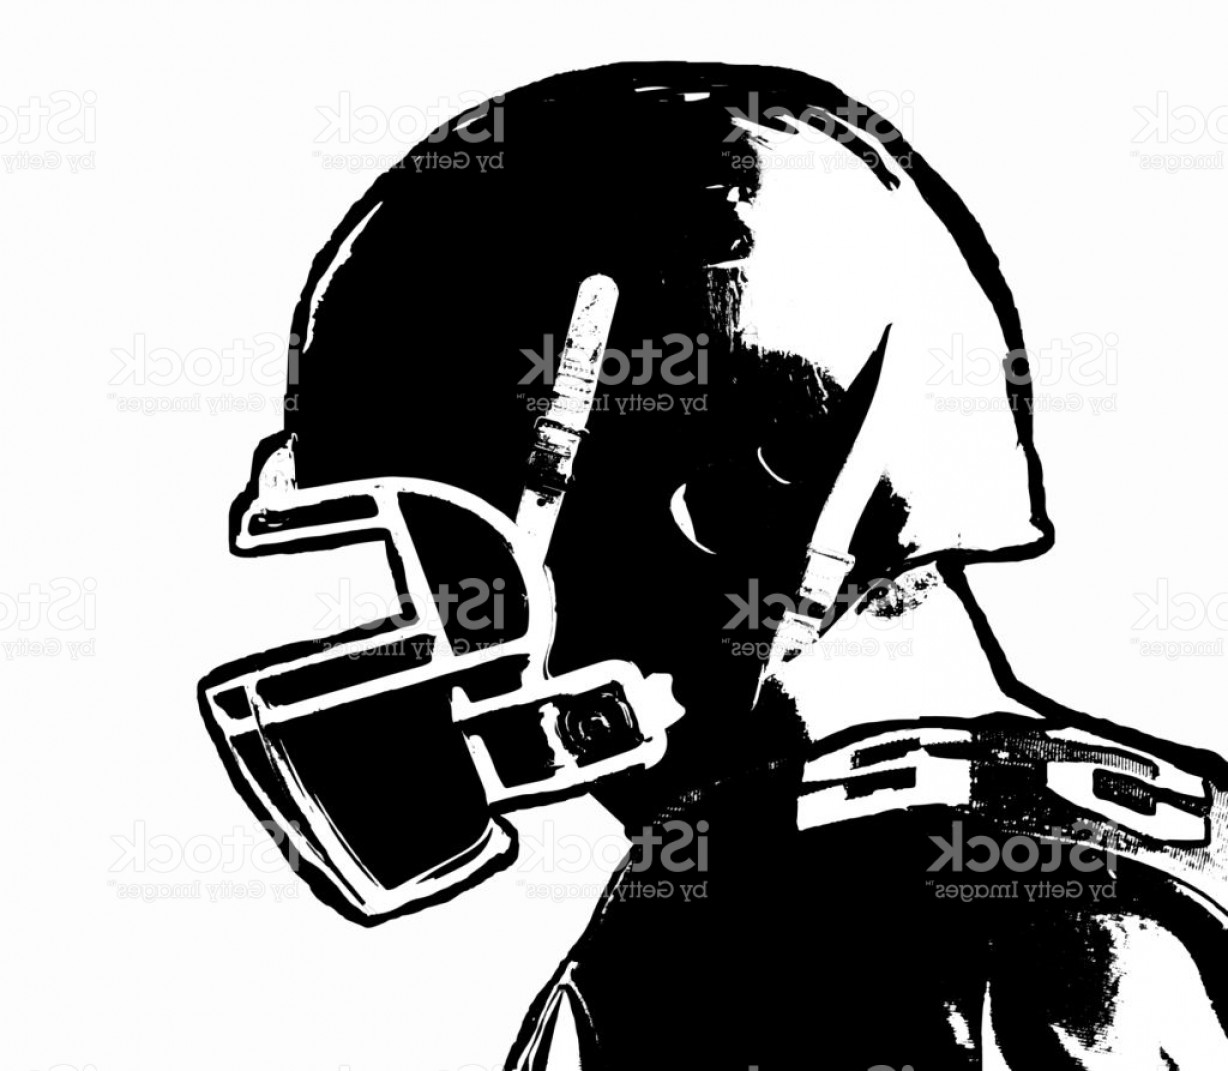 Boba Fett Vector Black And White: Black And White Hand Drawn American Football Player On White Background Gm